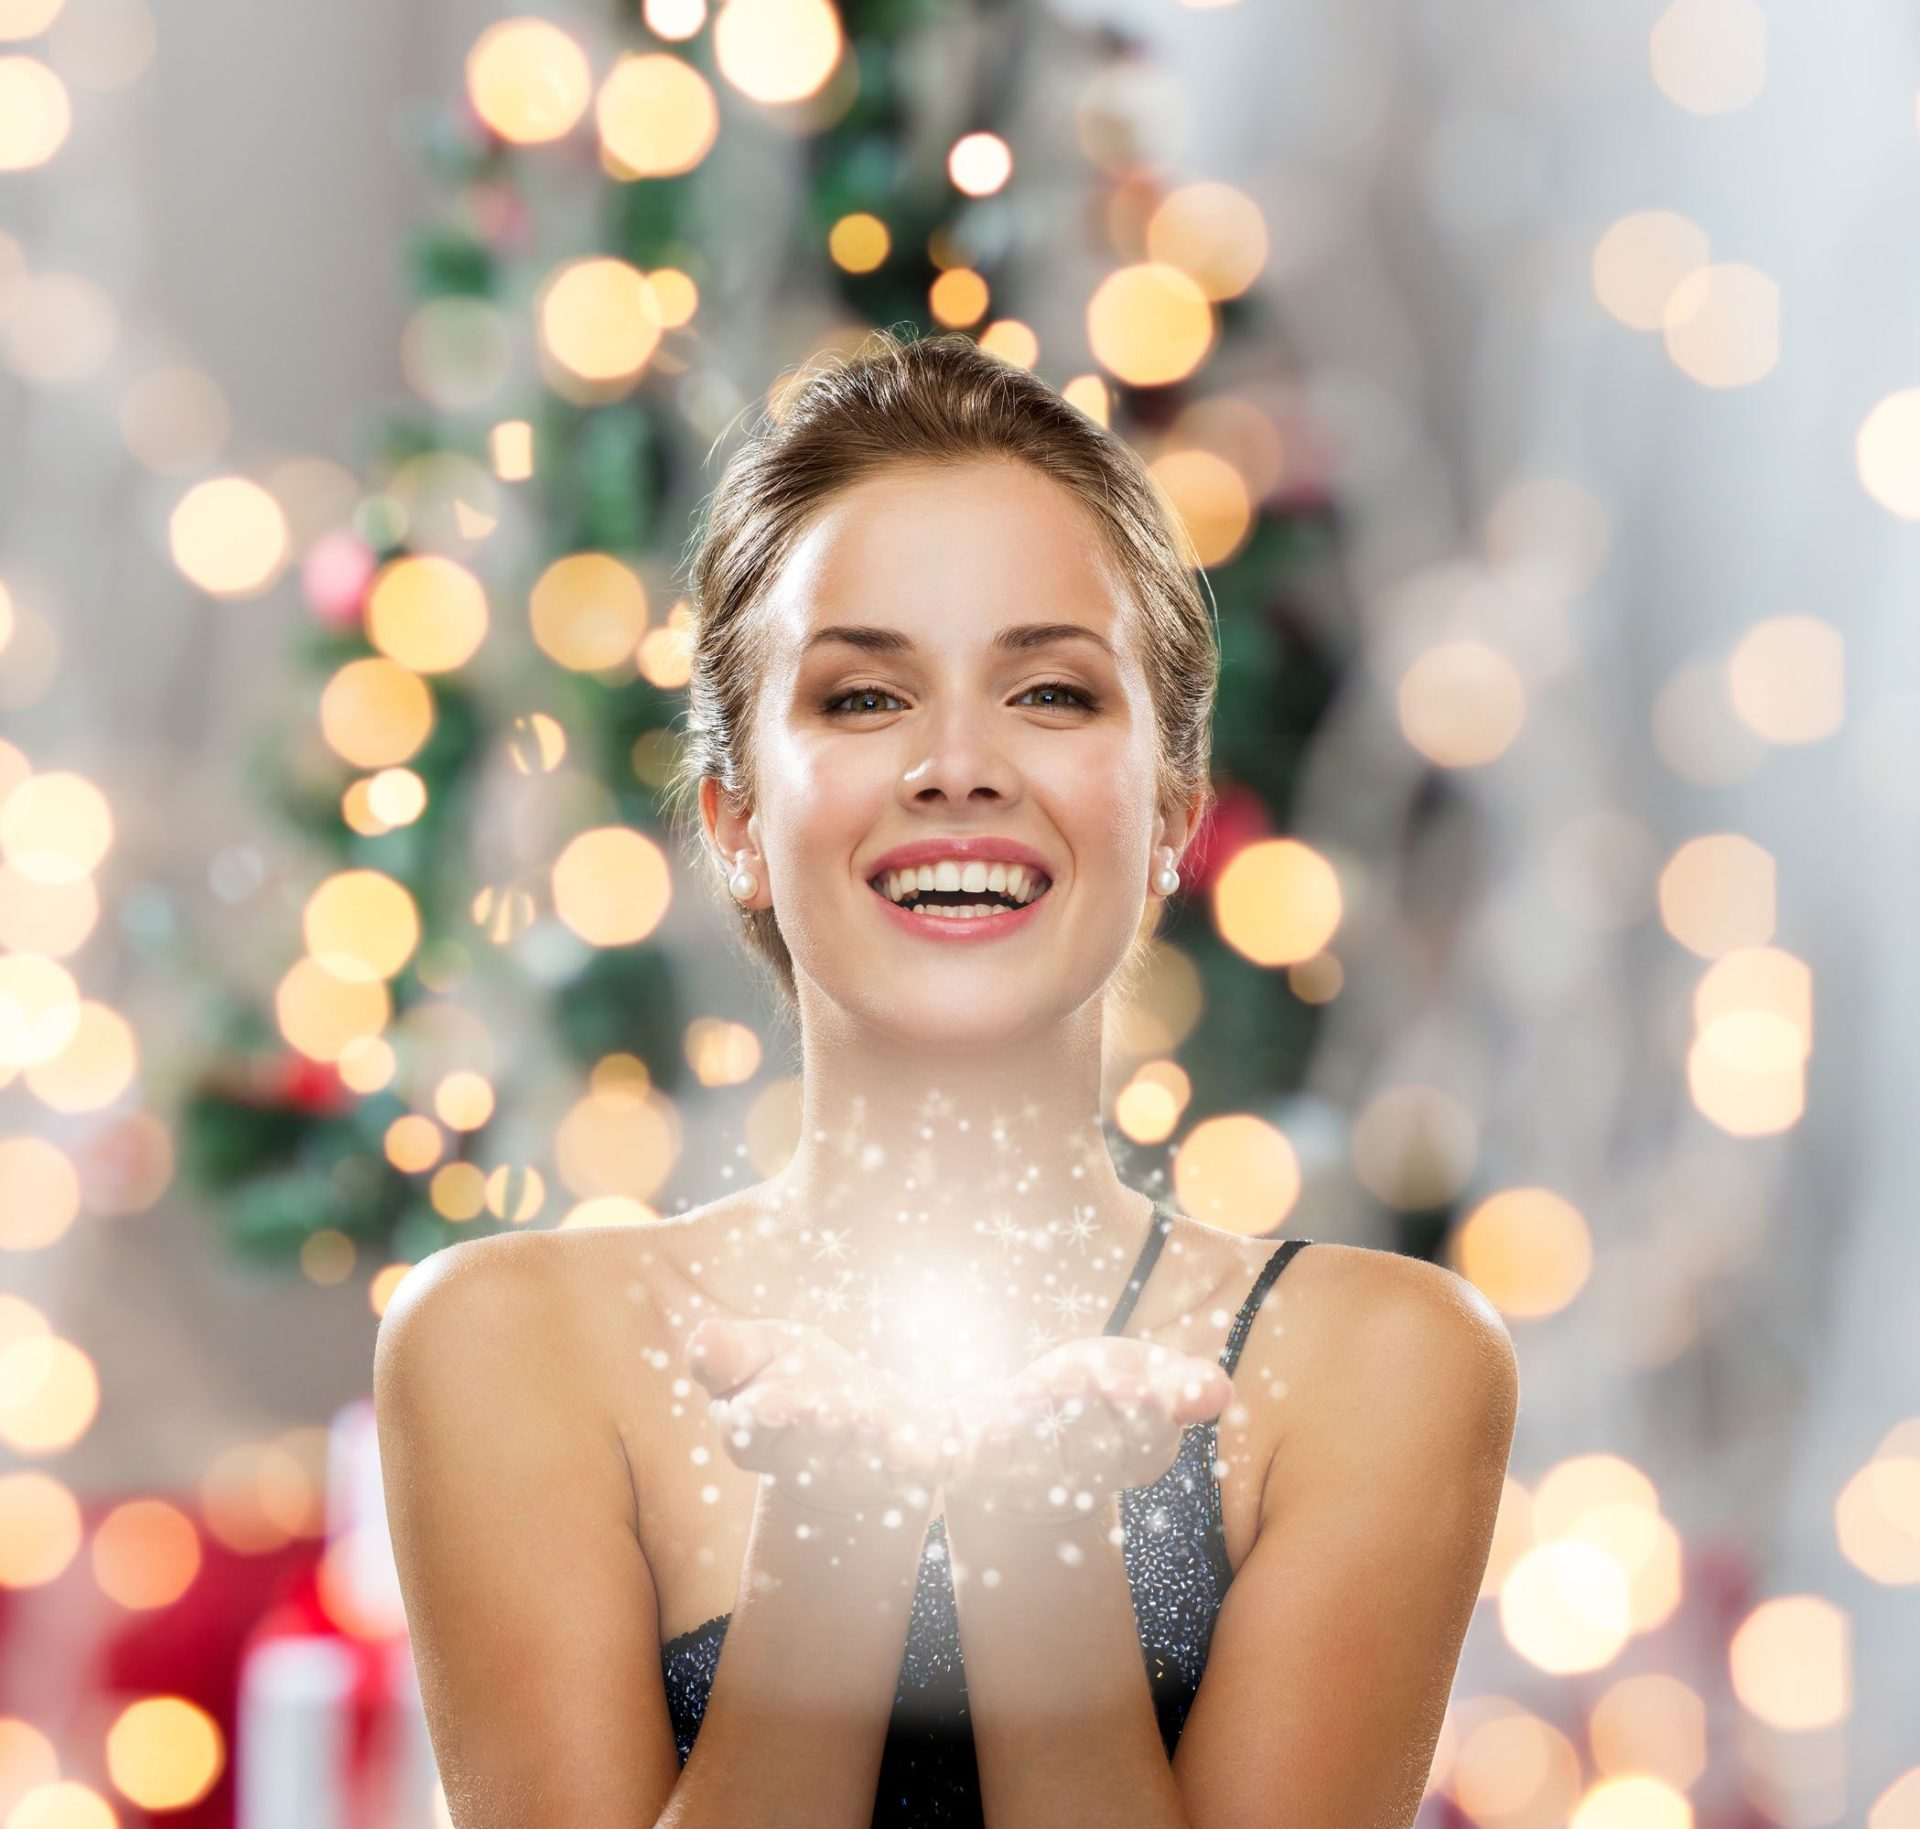 Get Glowing Skin This Christmas